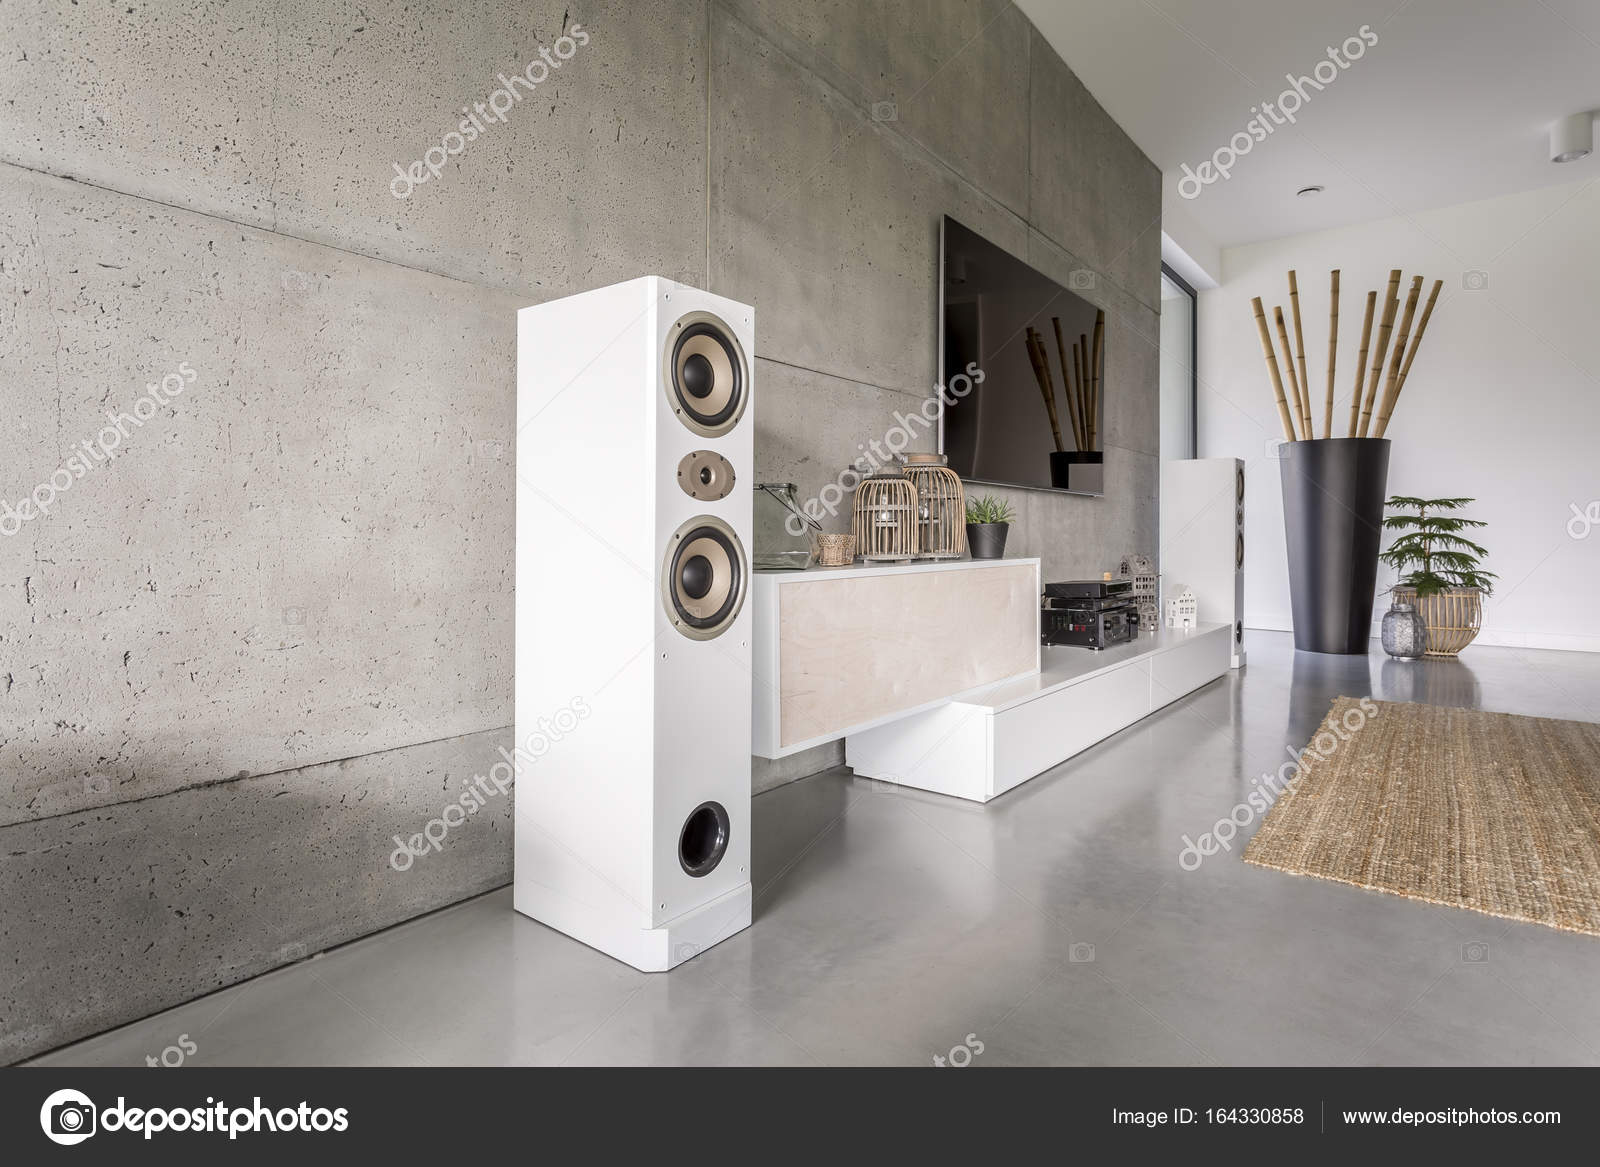 Tappeto Home Theatre Home Theatre In Camera Di Giorno Foto Stock Photographee Eu